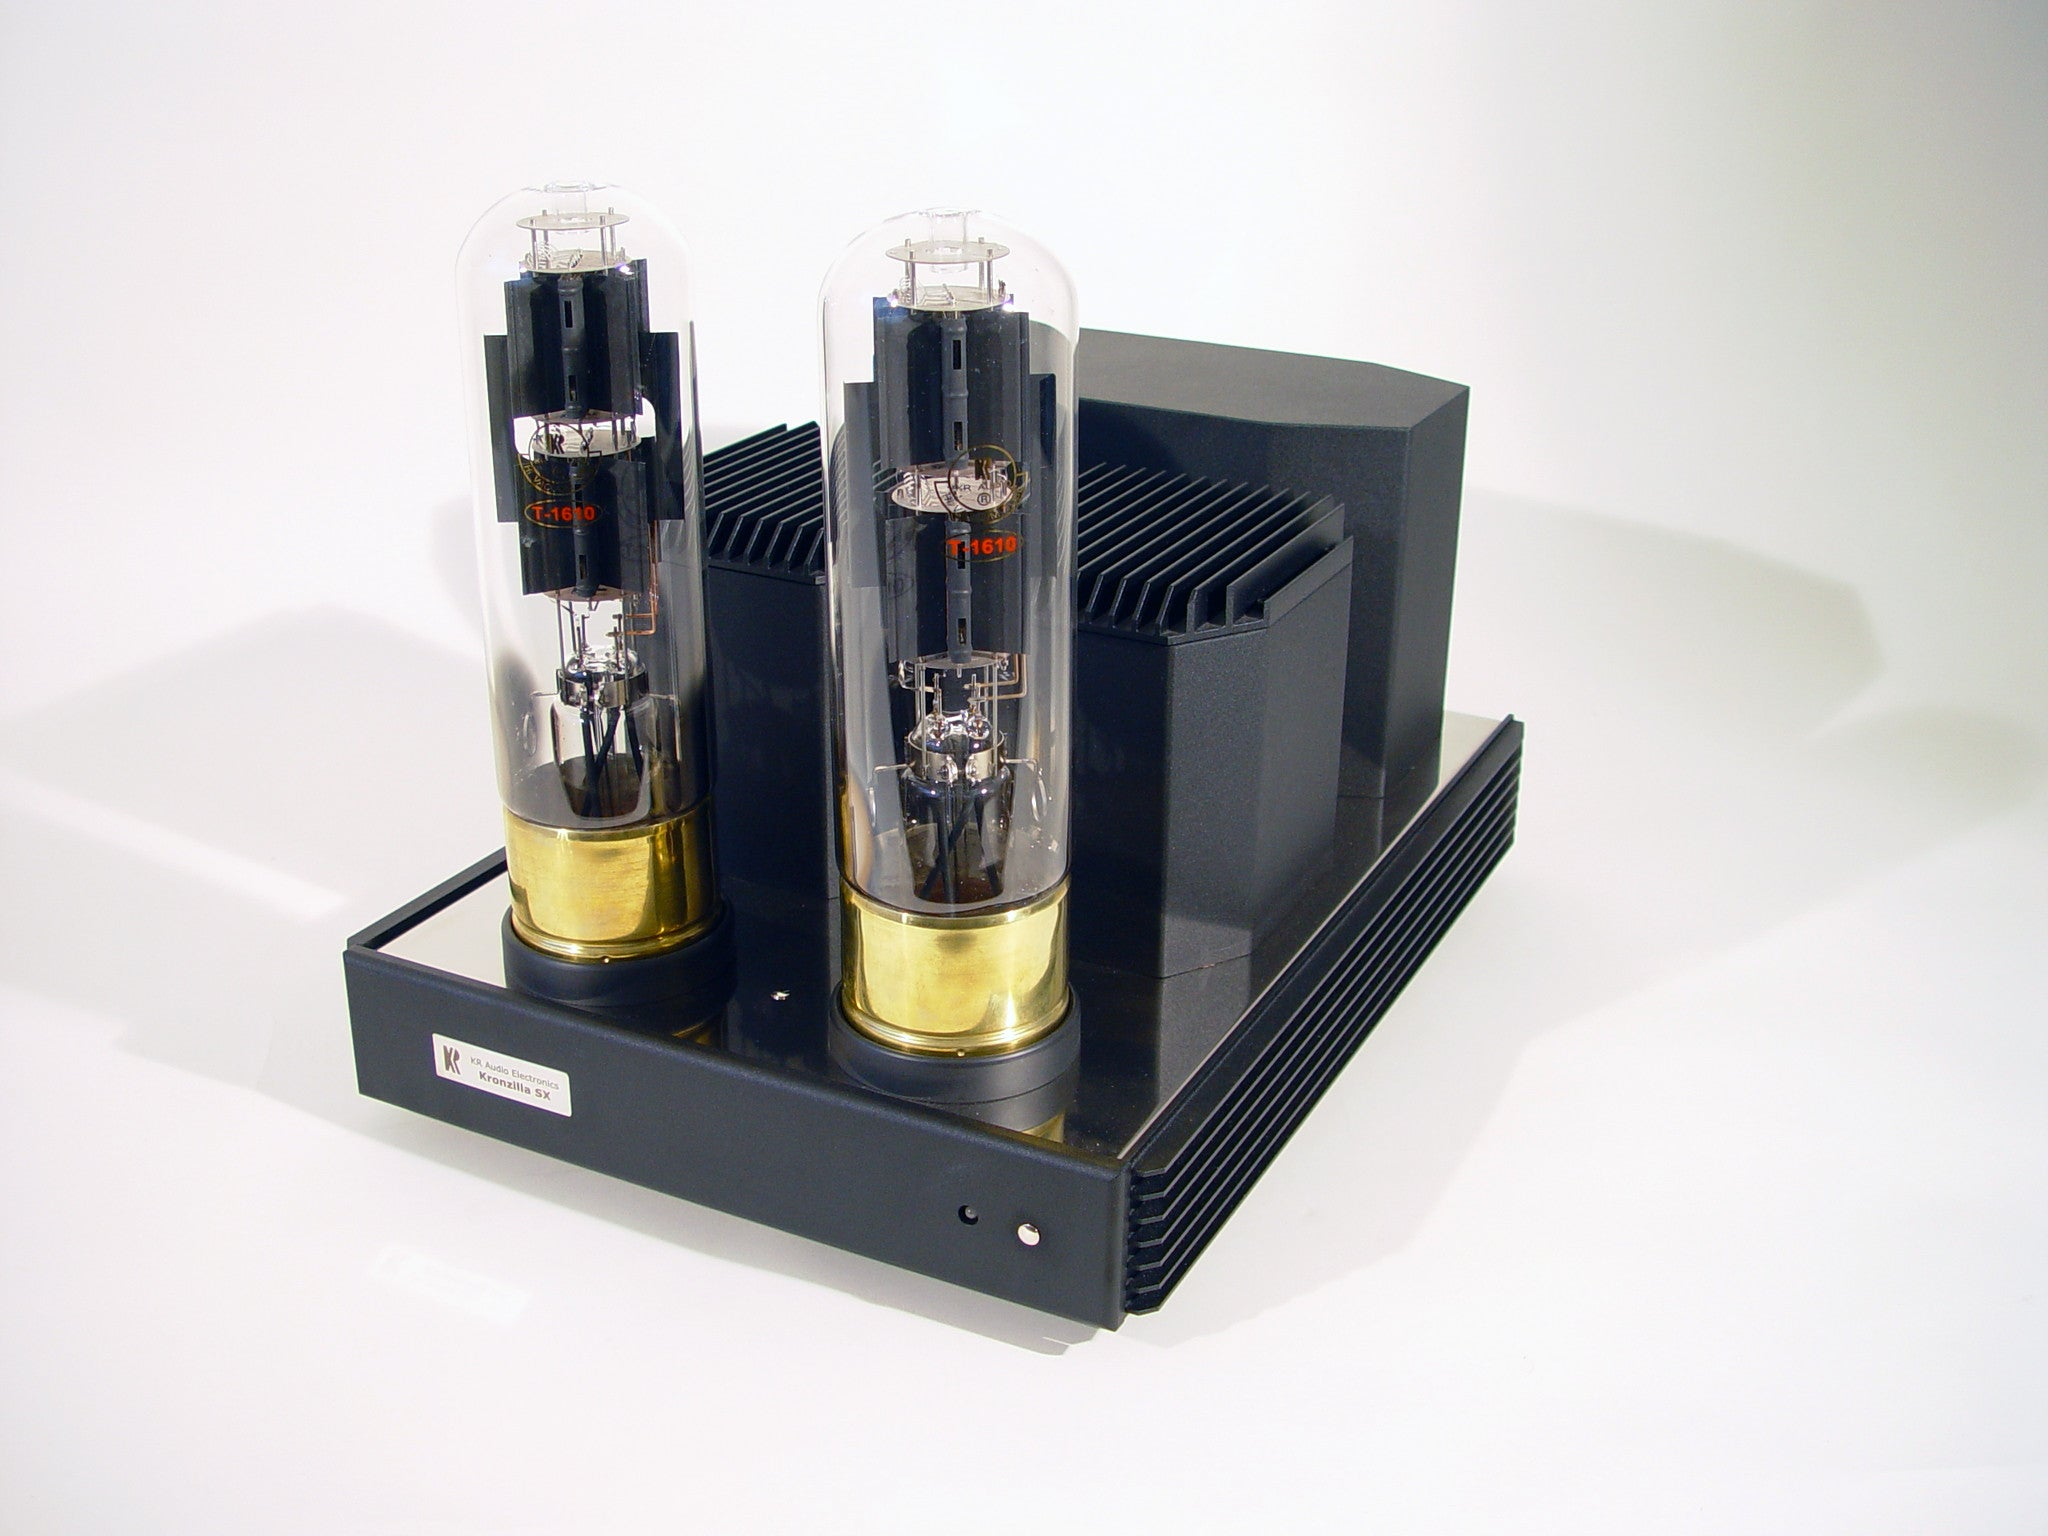 KR Audio Kronzilla SX Power Amplifier